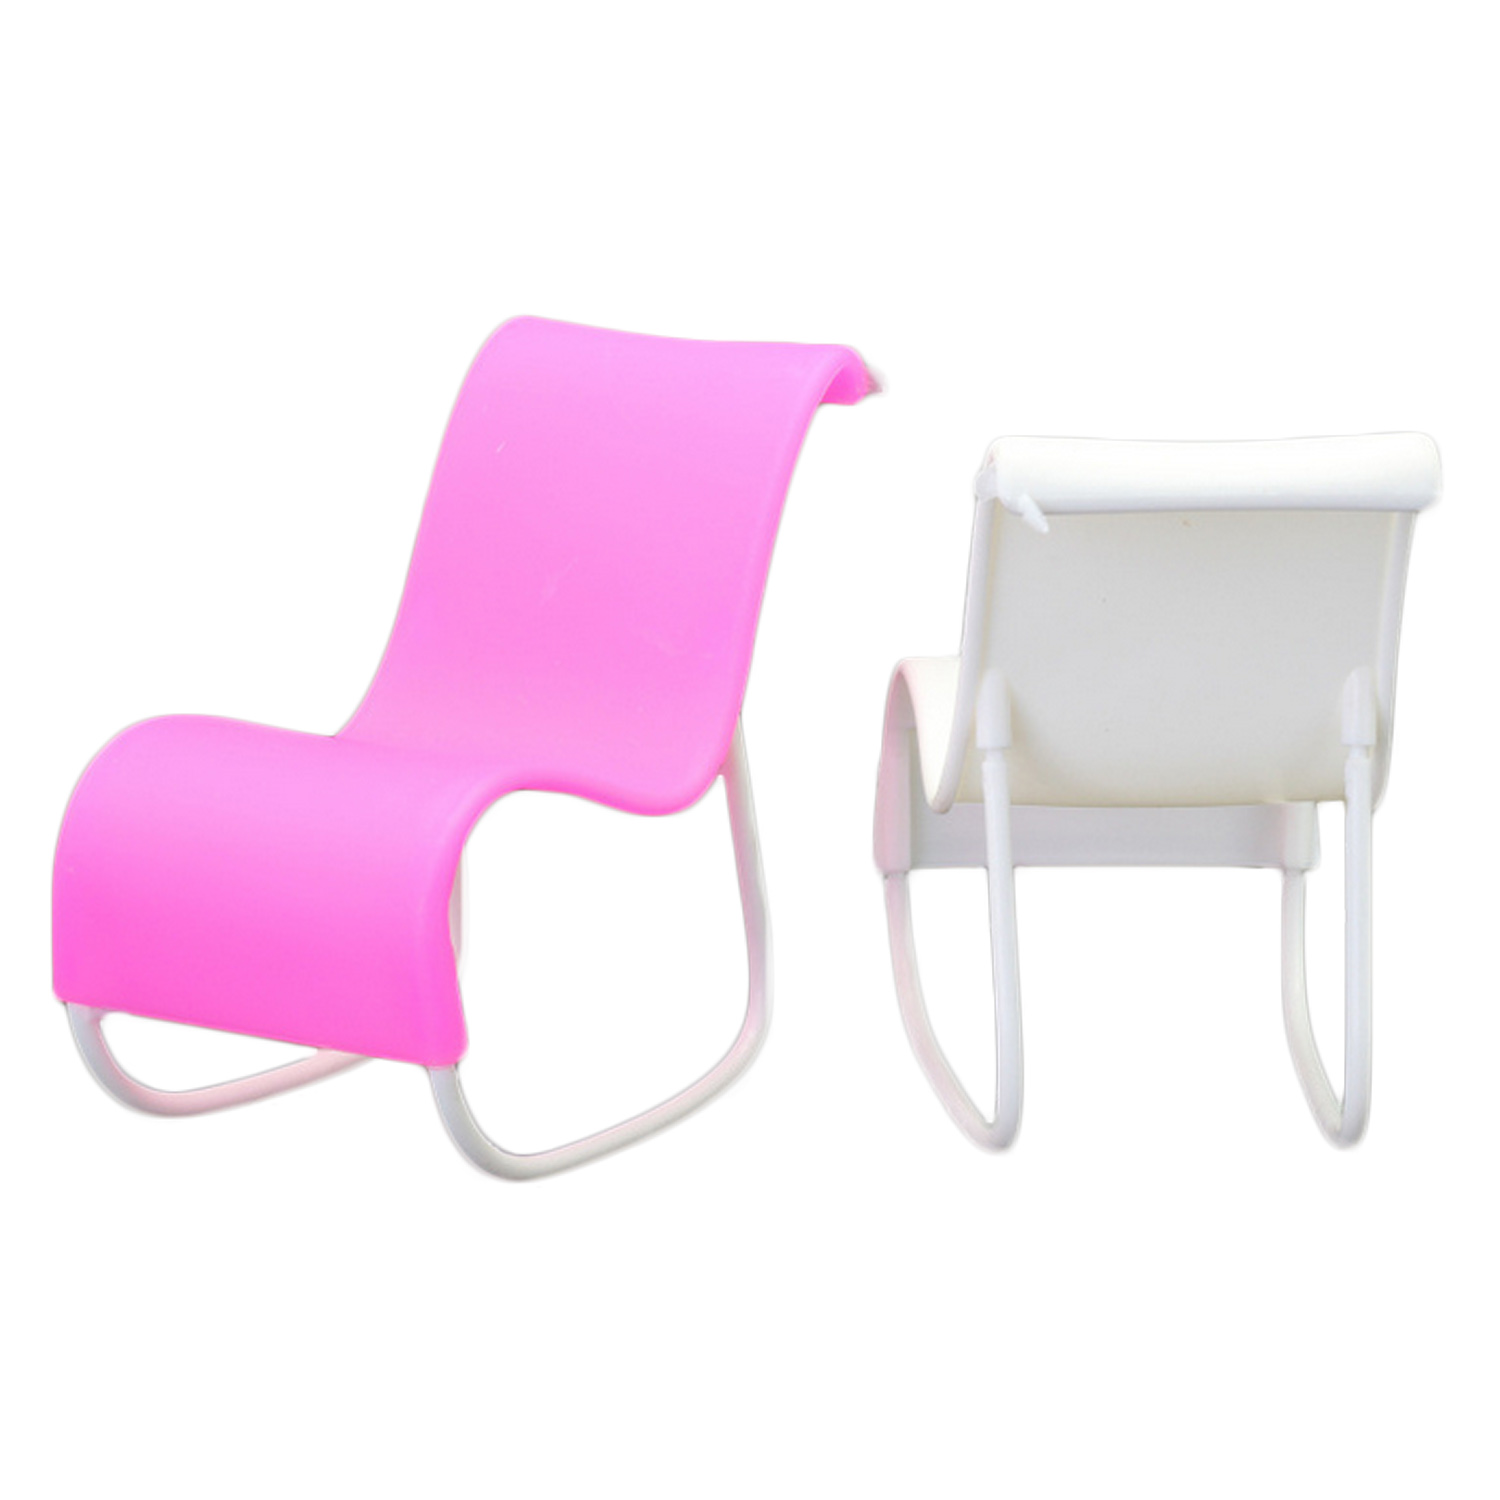 2 PCS Doll Beach Lounge Rocking Chair Living Room Furniture Accessories for Barbie Toys Princess Dreamhouse